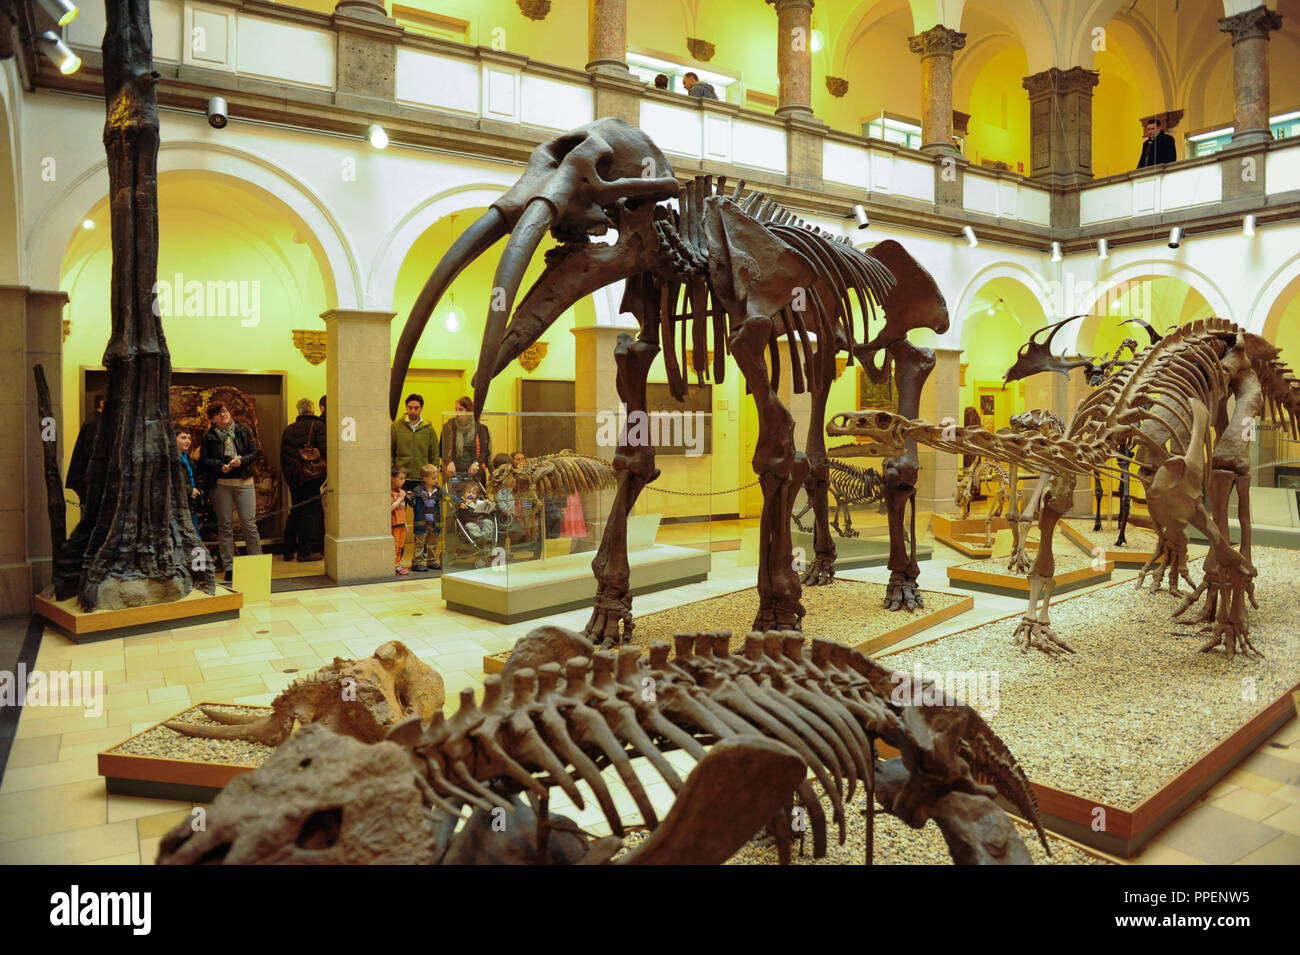 Skeletons of an ancient elephant and a dinosaur, pictured on the open day of the two neighboring museums, the Museum of Paleontology and the Museum of Geology at the Richard-Wagner-Strasse 10. - Stock Image